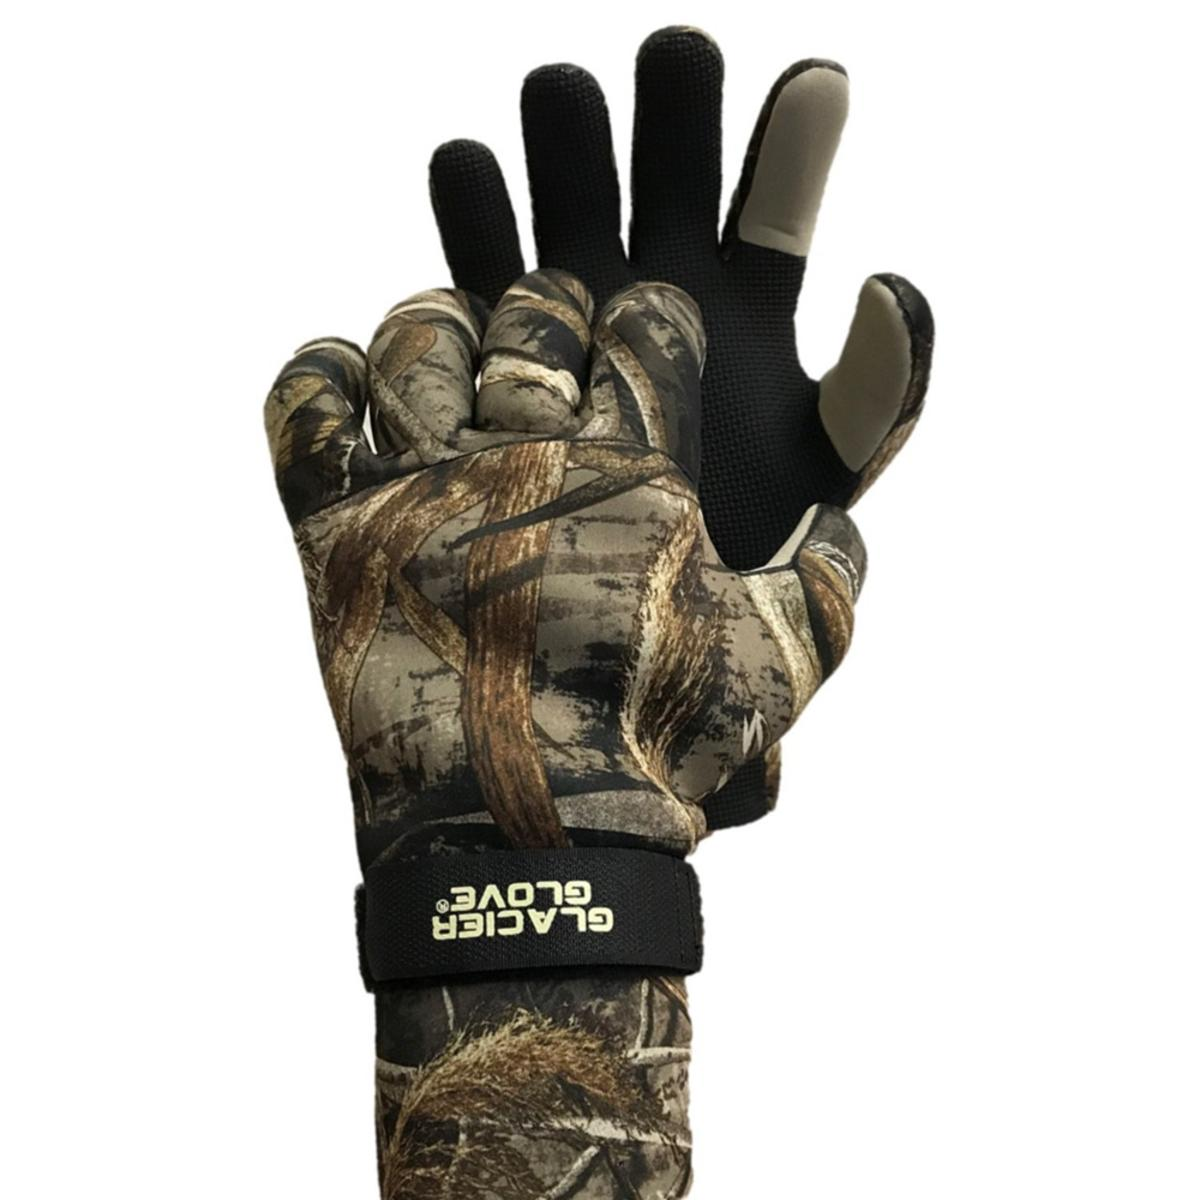 Glacier Glove Bristol Bay Waterproof Gloves - Realtree Max 5 HD